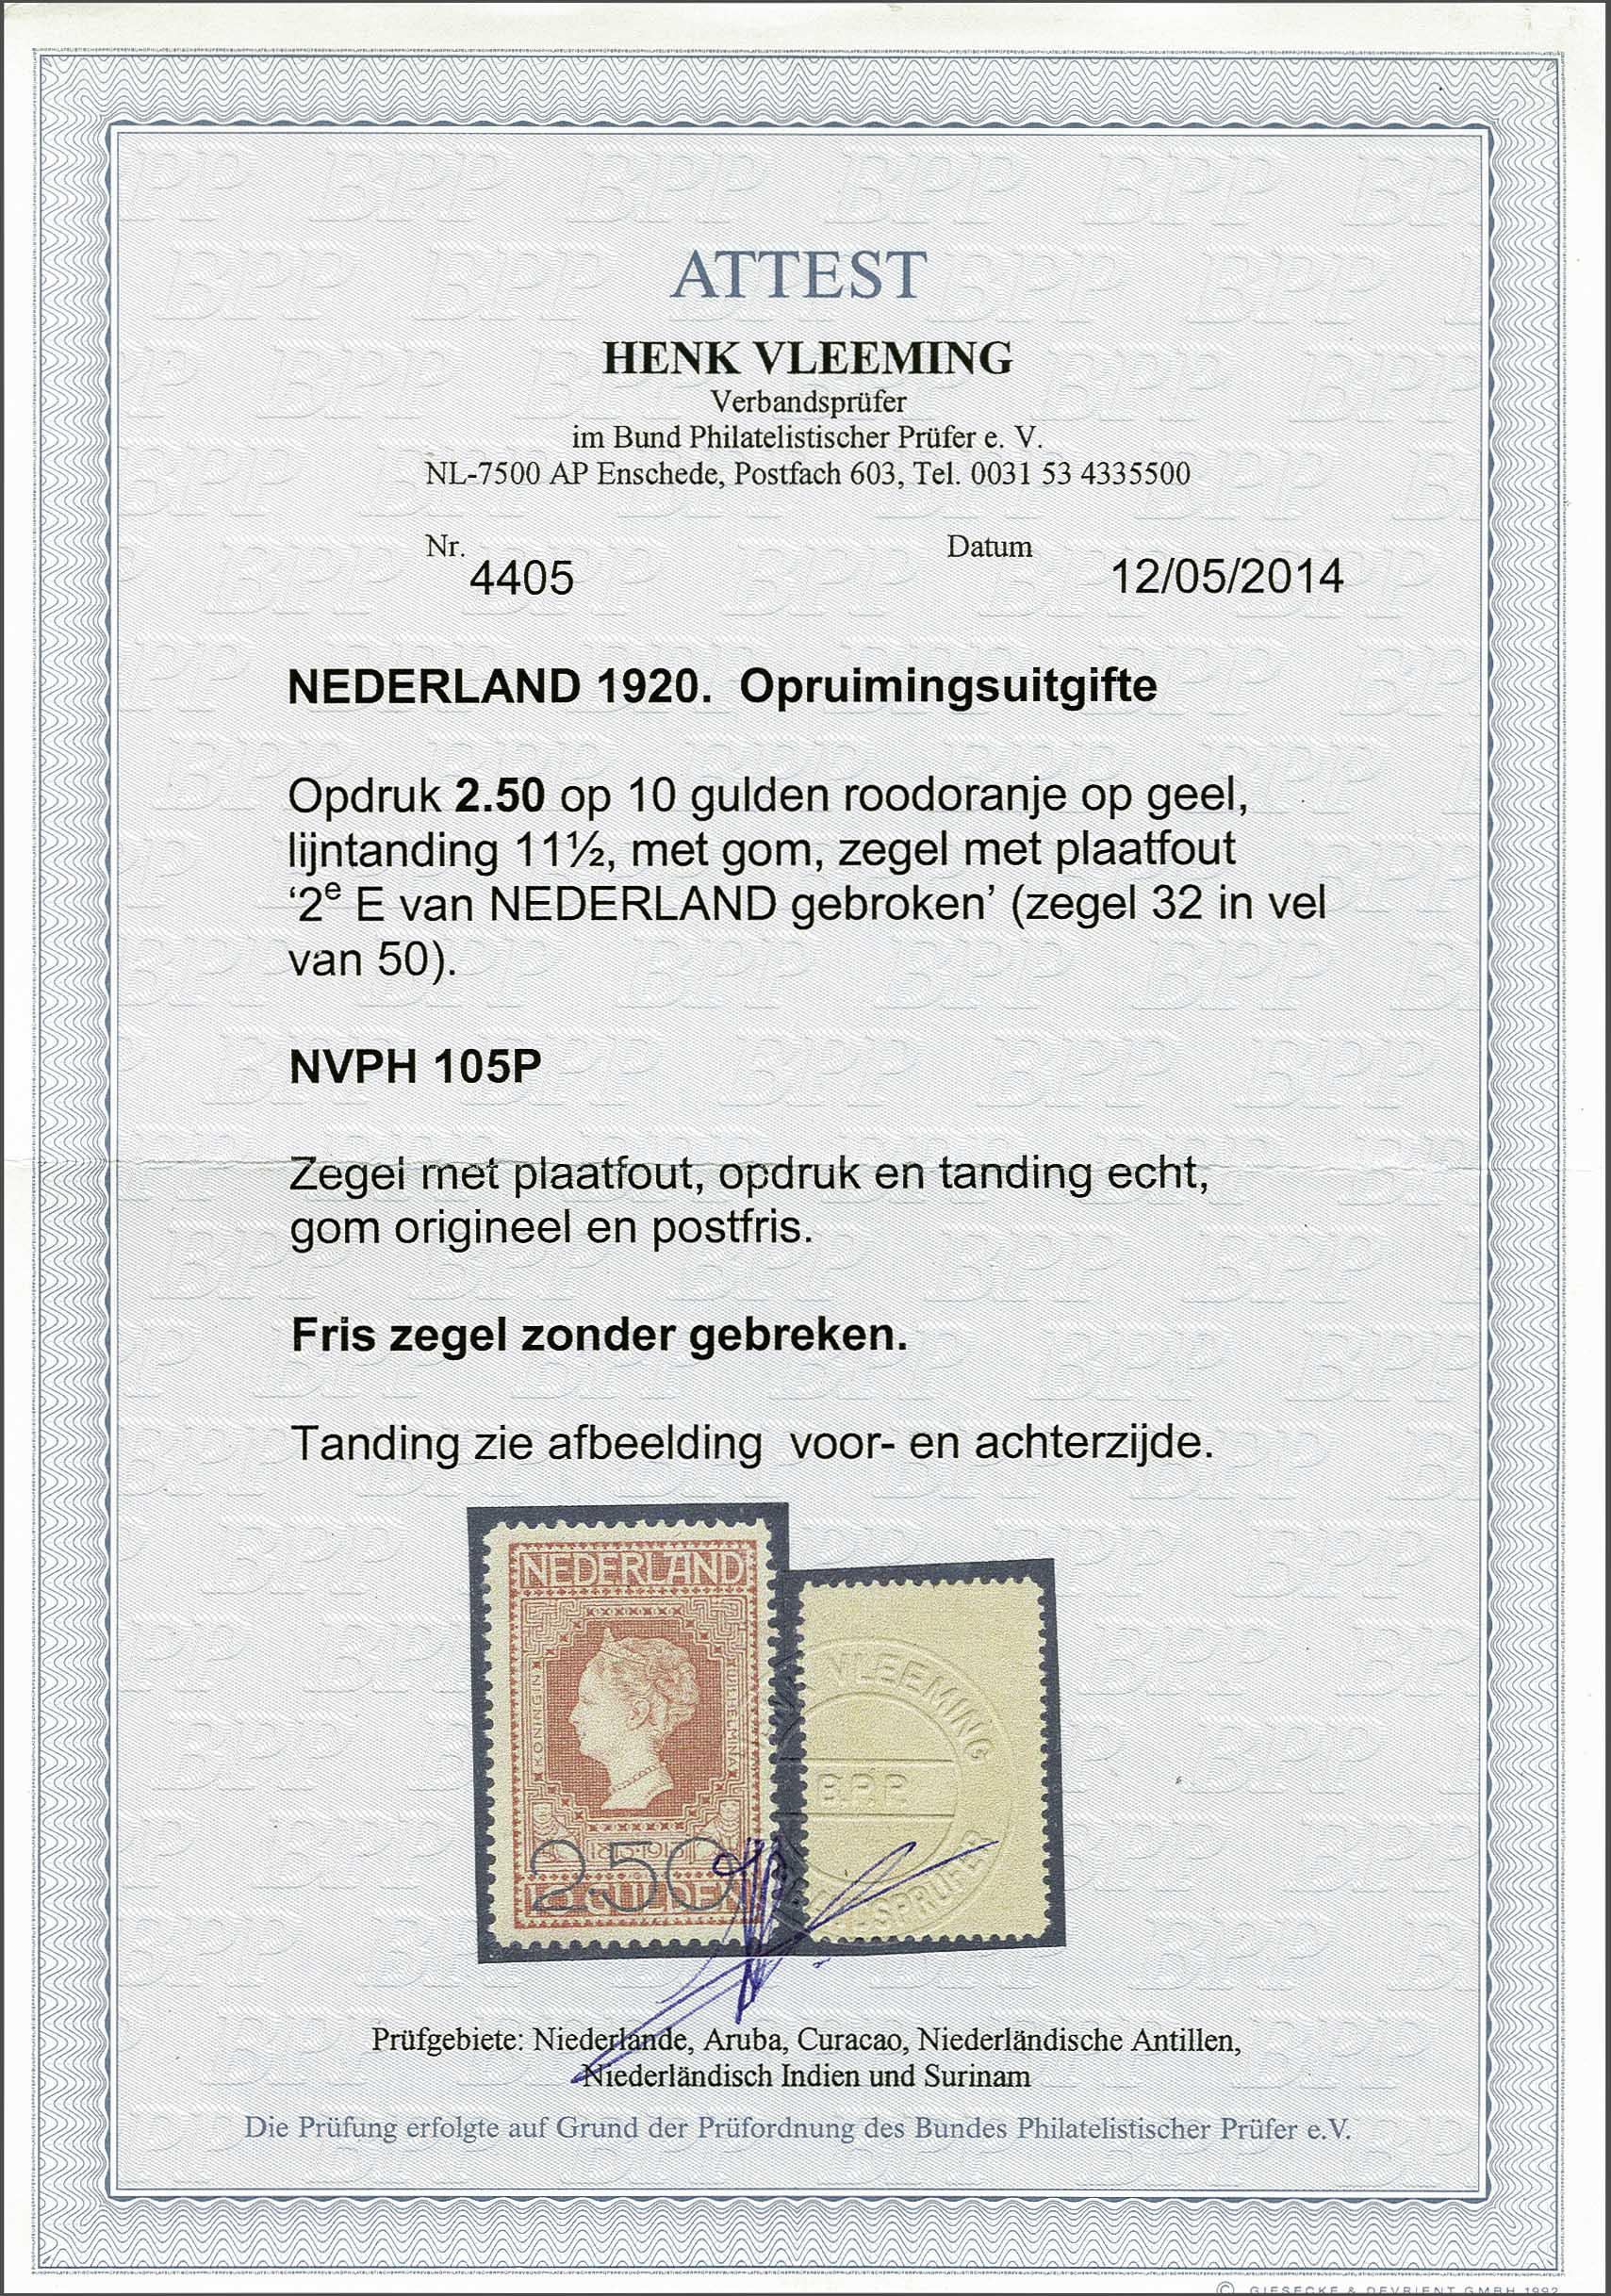 Lot 1850 - Netherlands and former colonies Netherlands -  Corinphila Veilingen Auction 245-246 Day 3 - Netherlands and former colonies - Single lots, Collections and lots, Boxes and literature